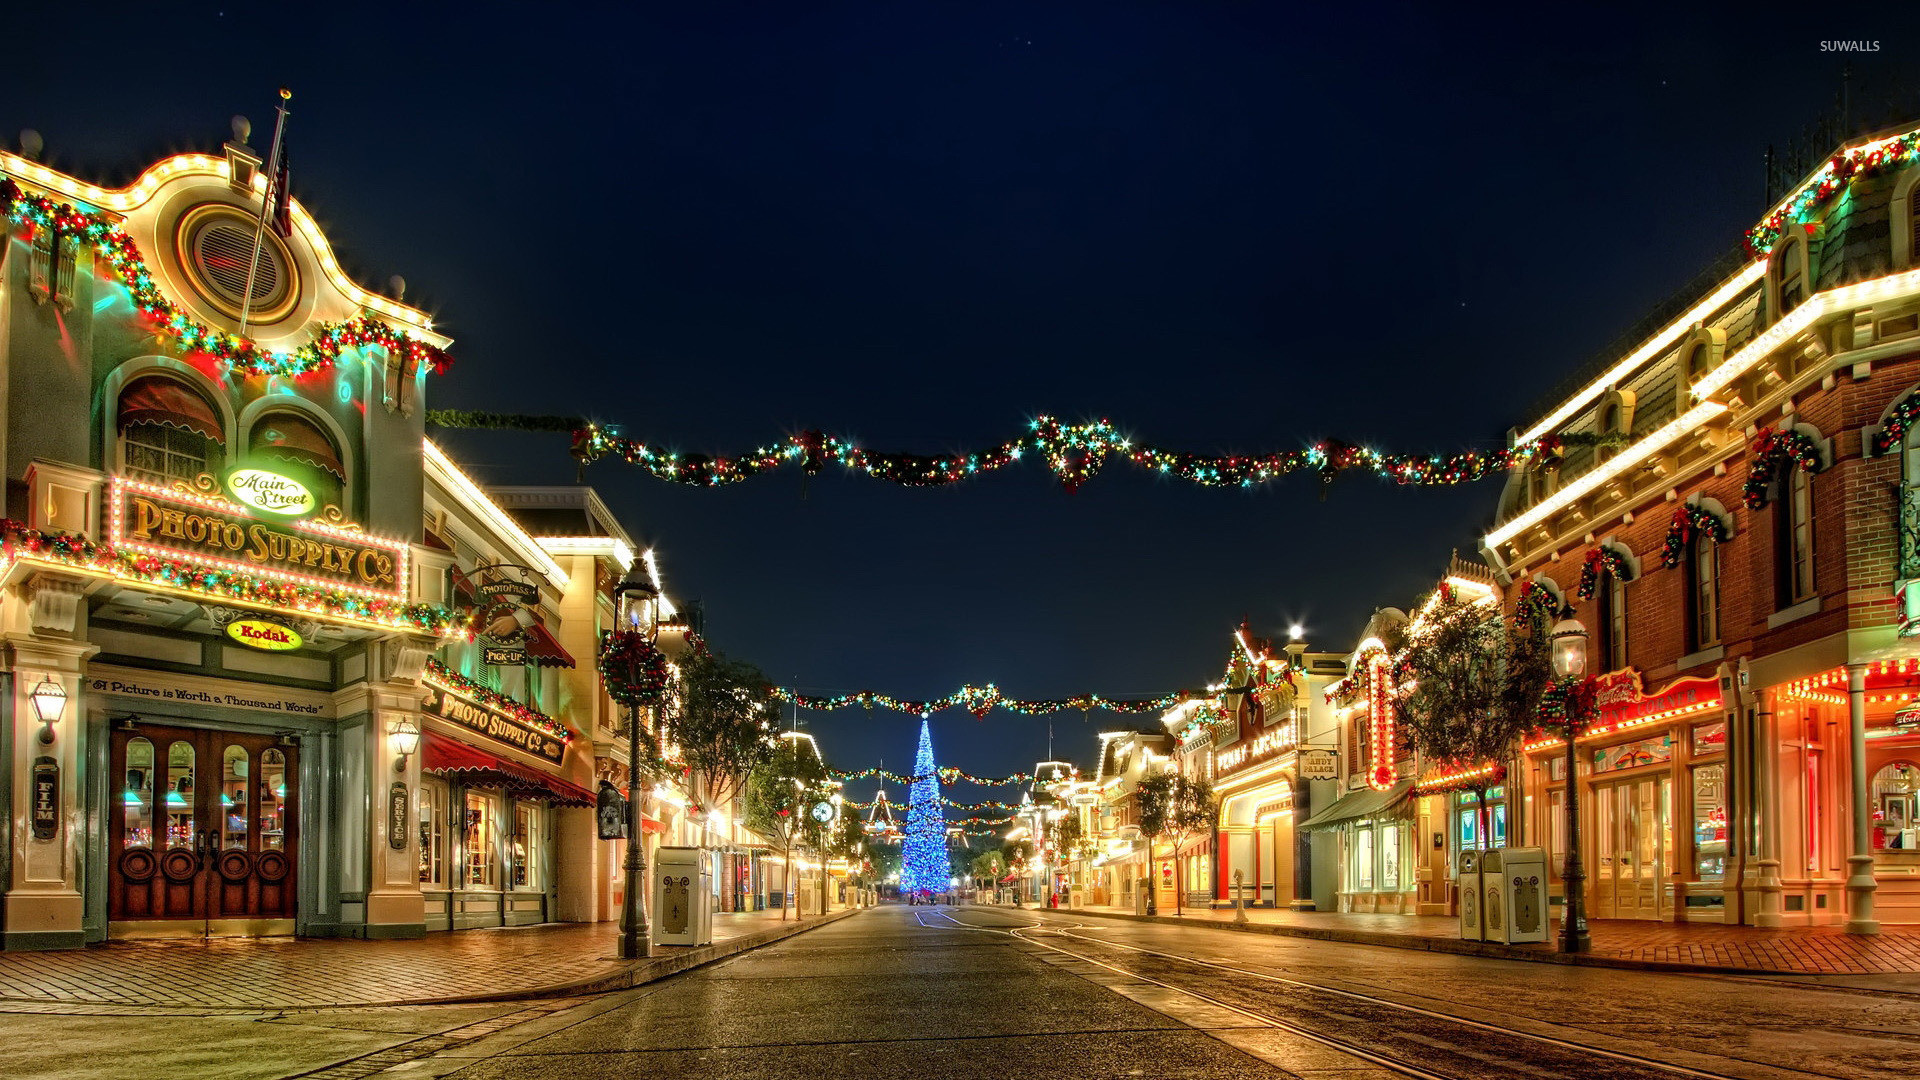 Christmas decorations in the city wallpaper jpg